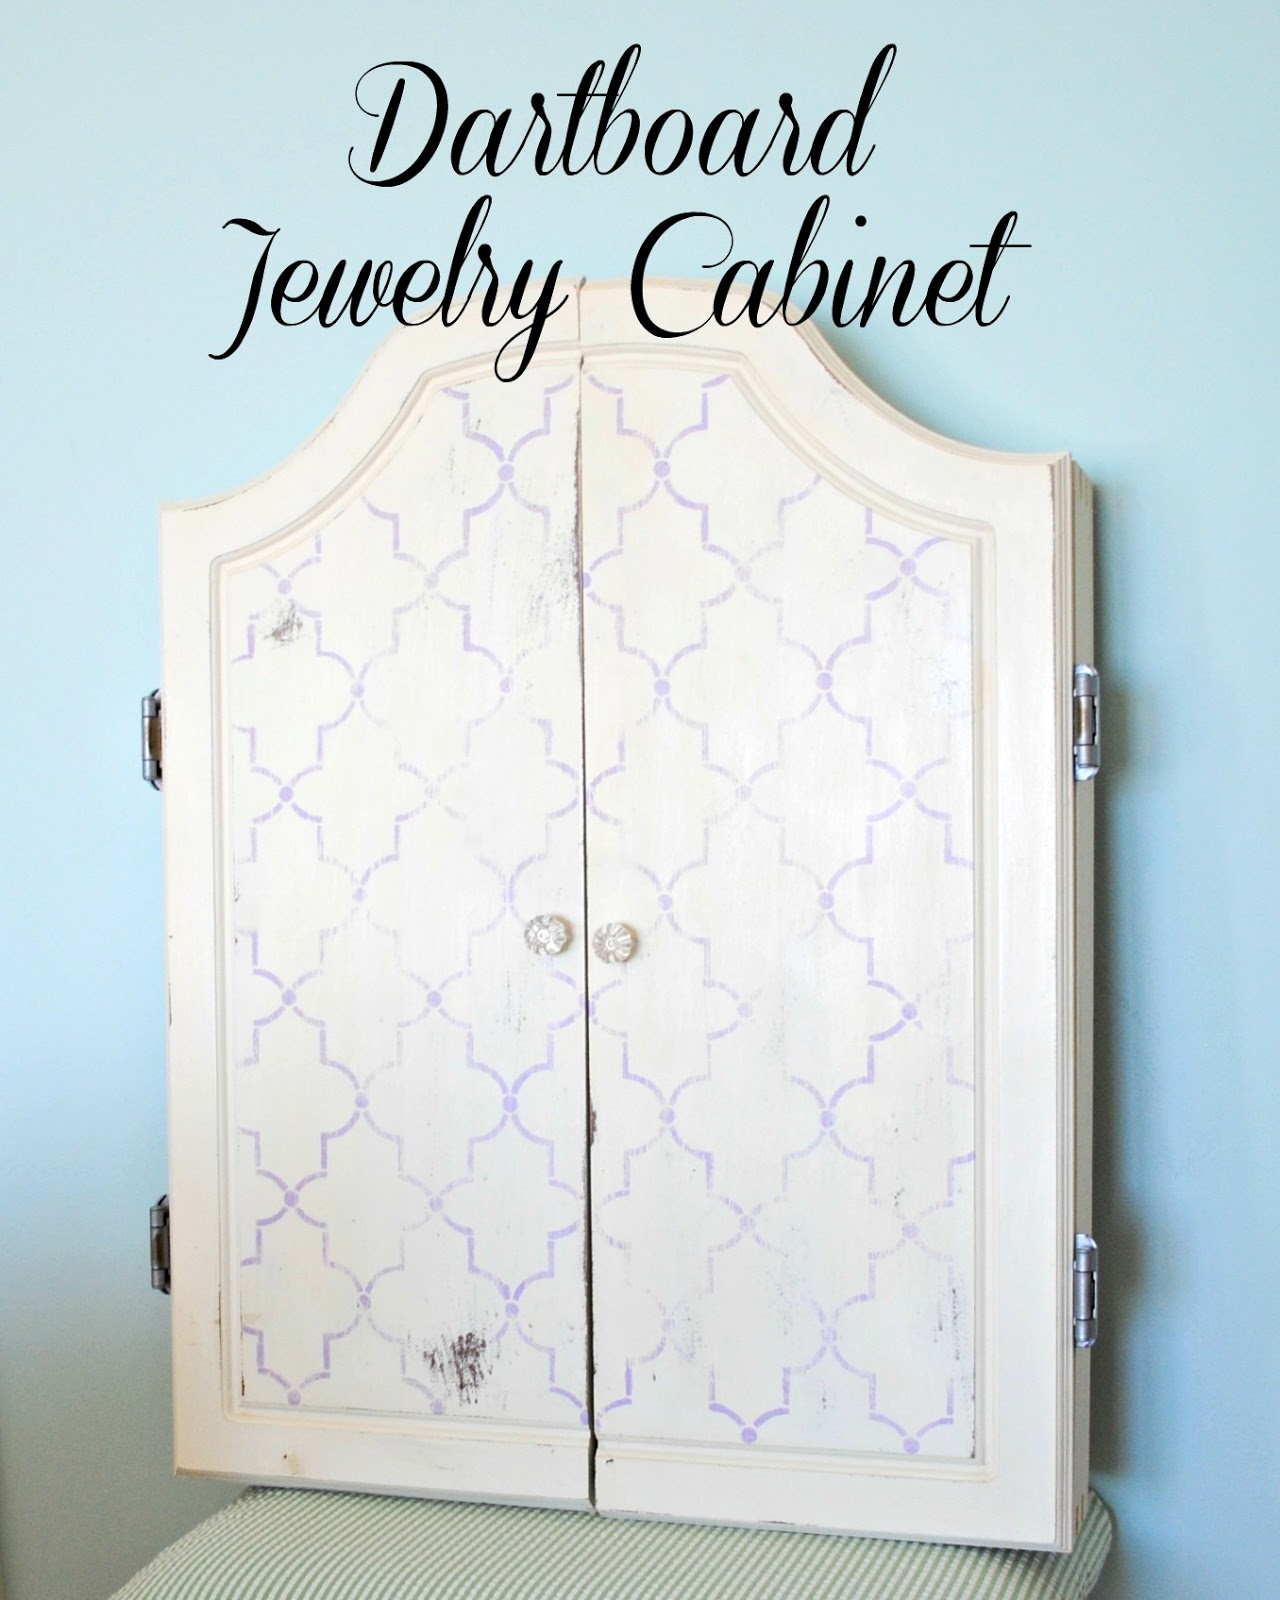 Dartboard Jewelry Cabinet It S The Season Finale Over At So You Think Re Crafty I M Excited That Made This Far For Week Theme Of